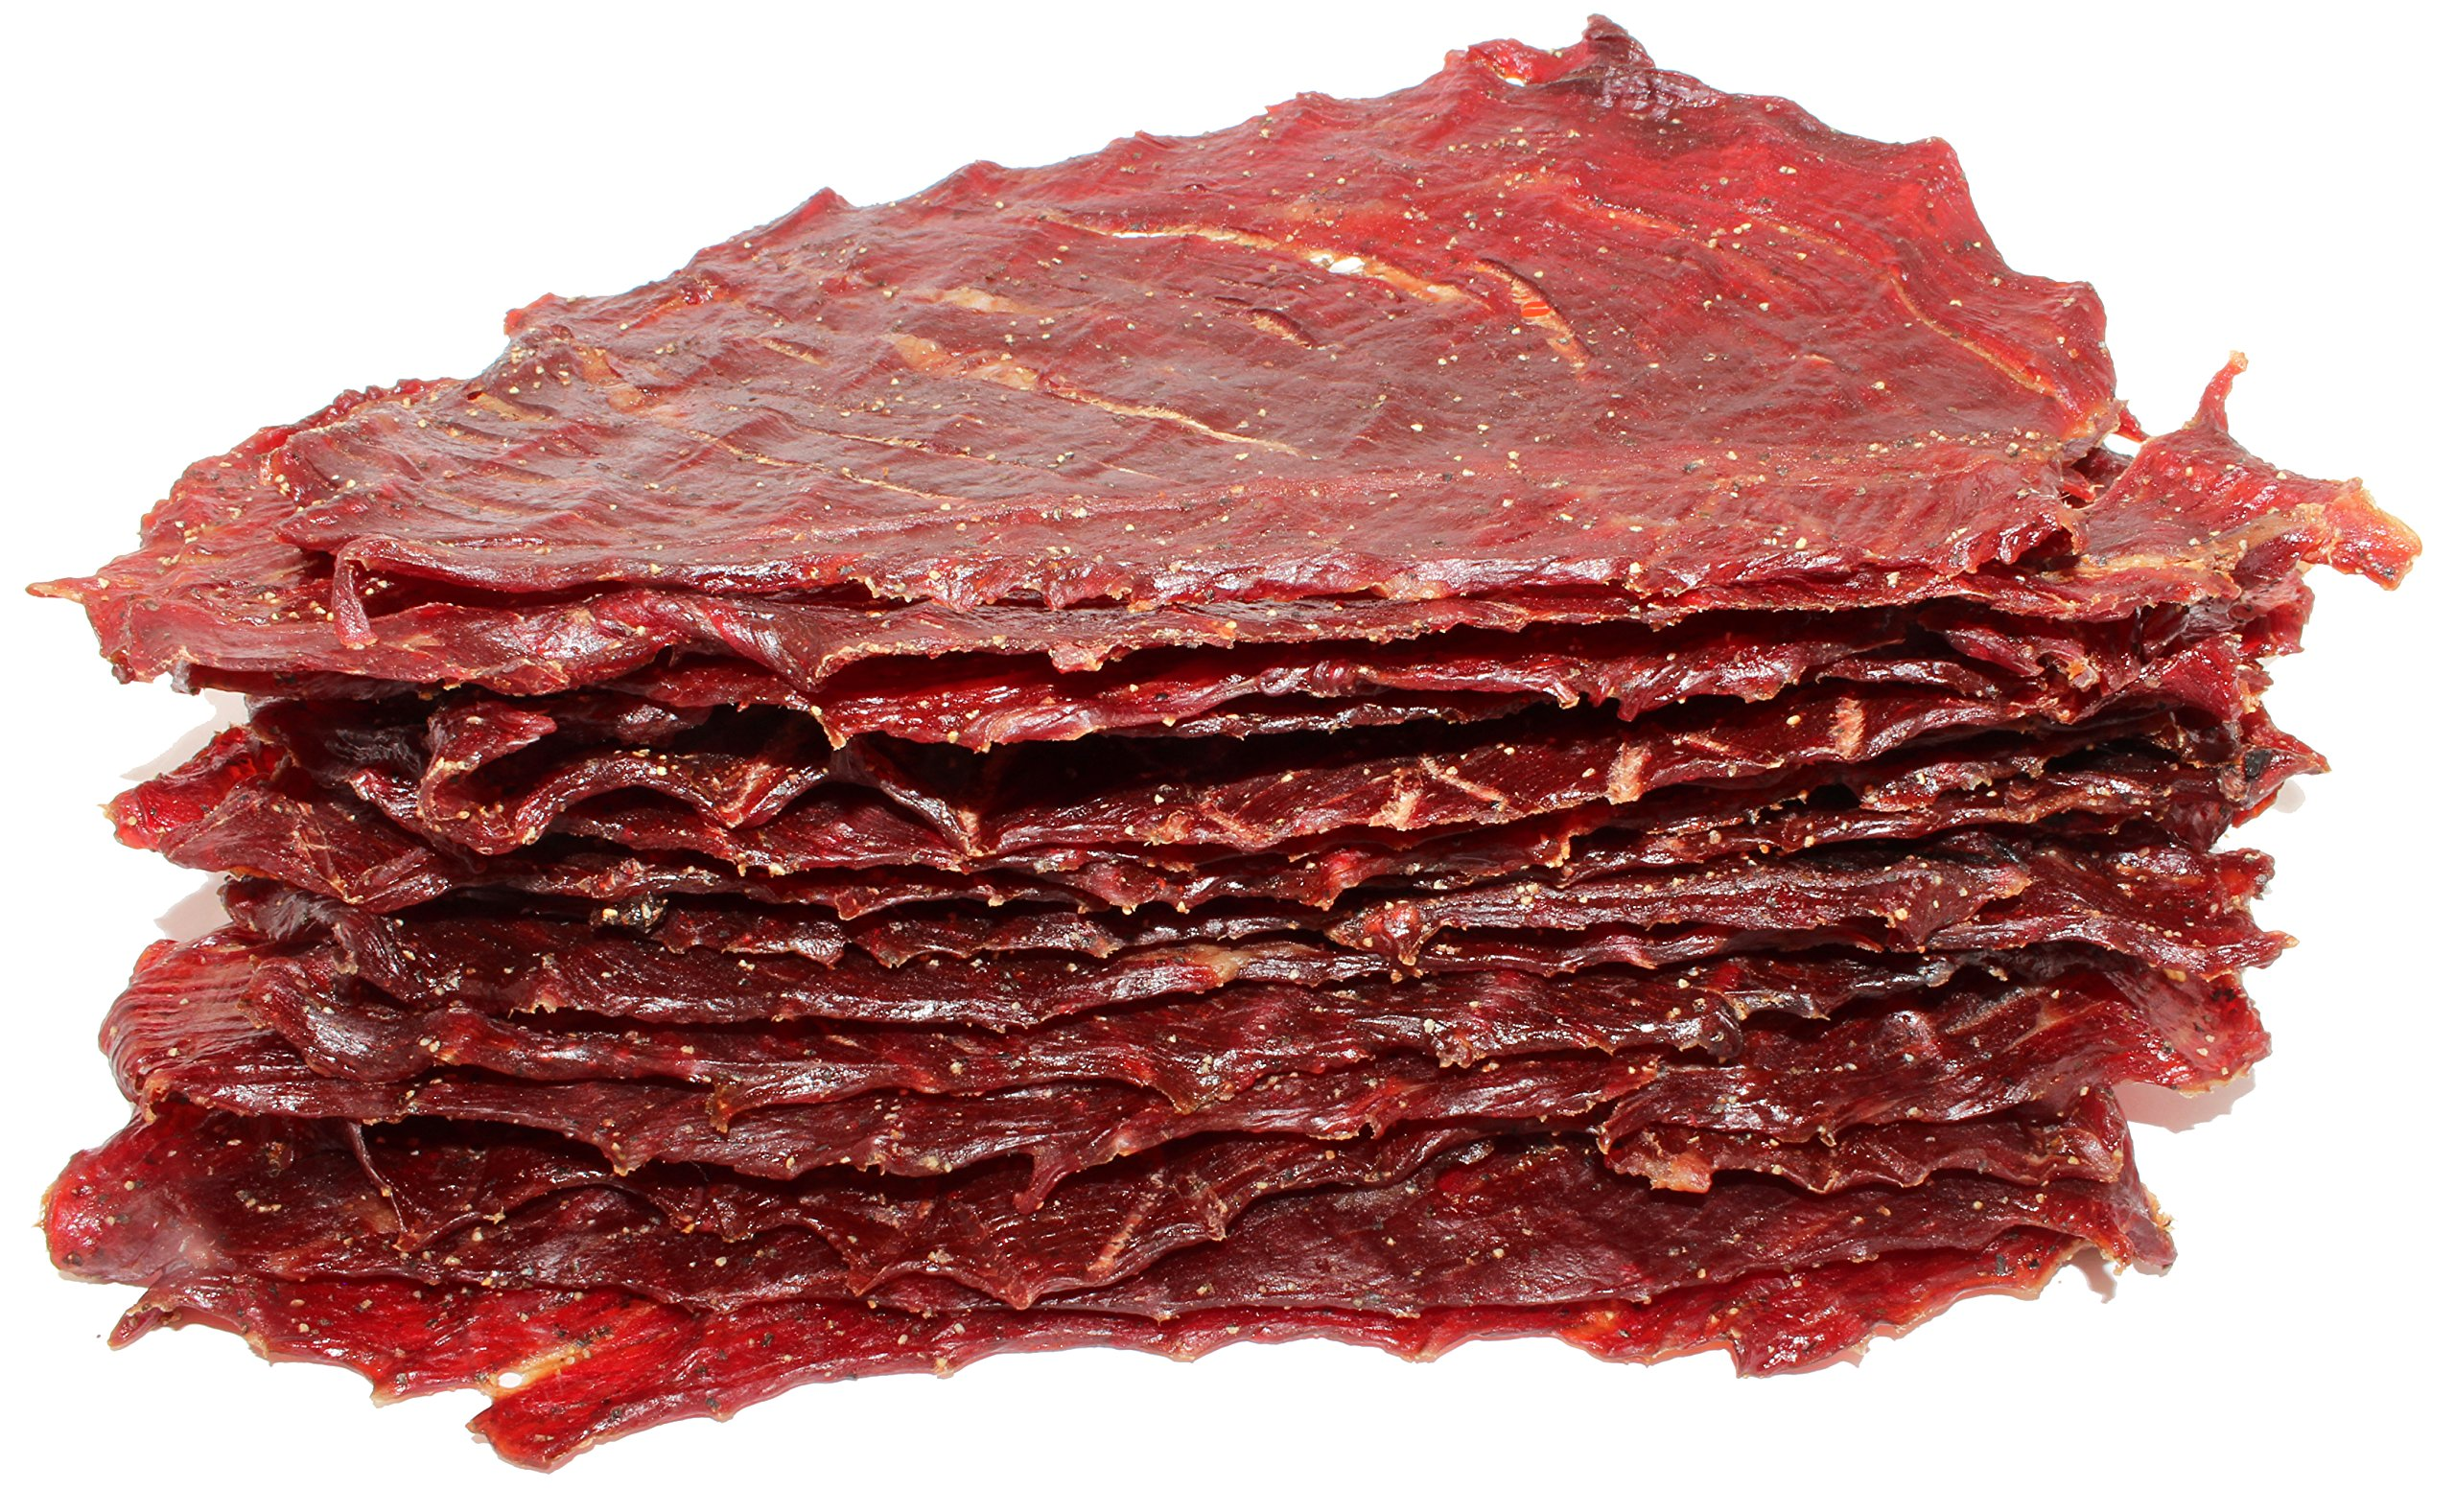 People's Choice Beef Jerky - Classic - Original - Big Slab - Whole Muscle Premium Cuts - High Protein Meat Snack - 15 Count - 1.5 Pound Bag by People's Choice Beef Jerky (Image #2)